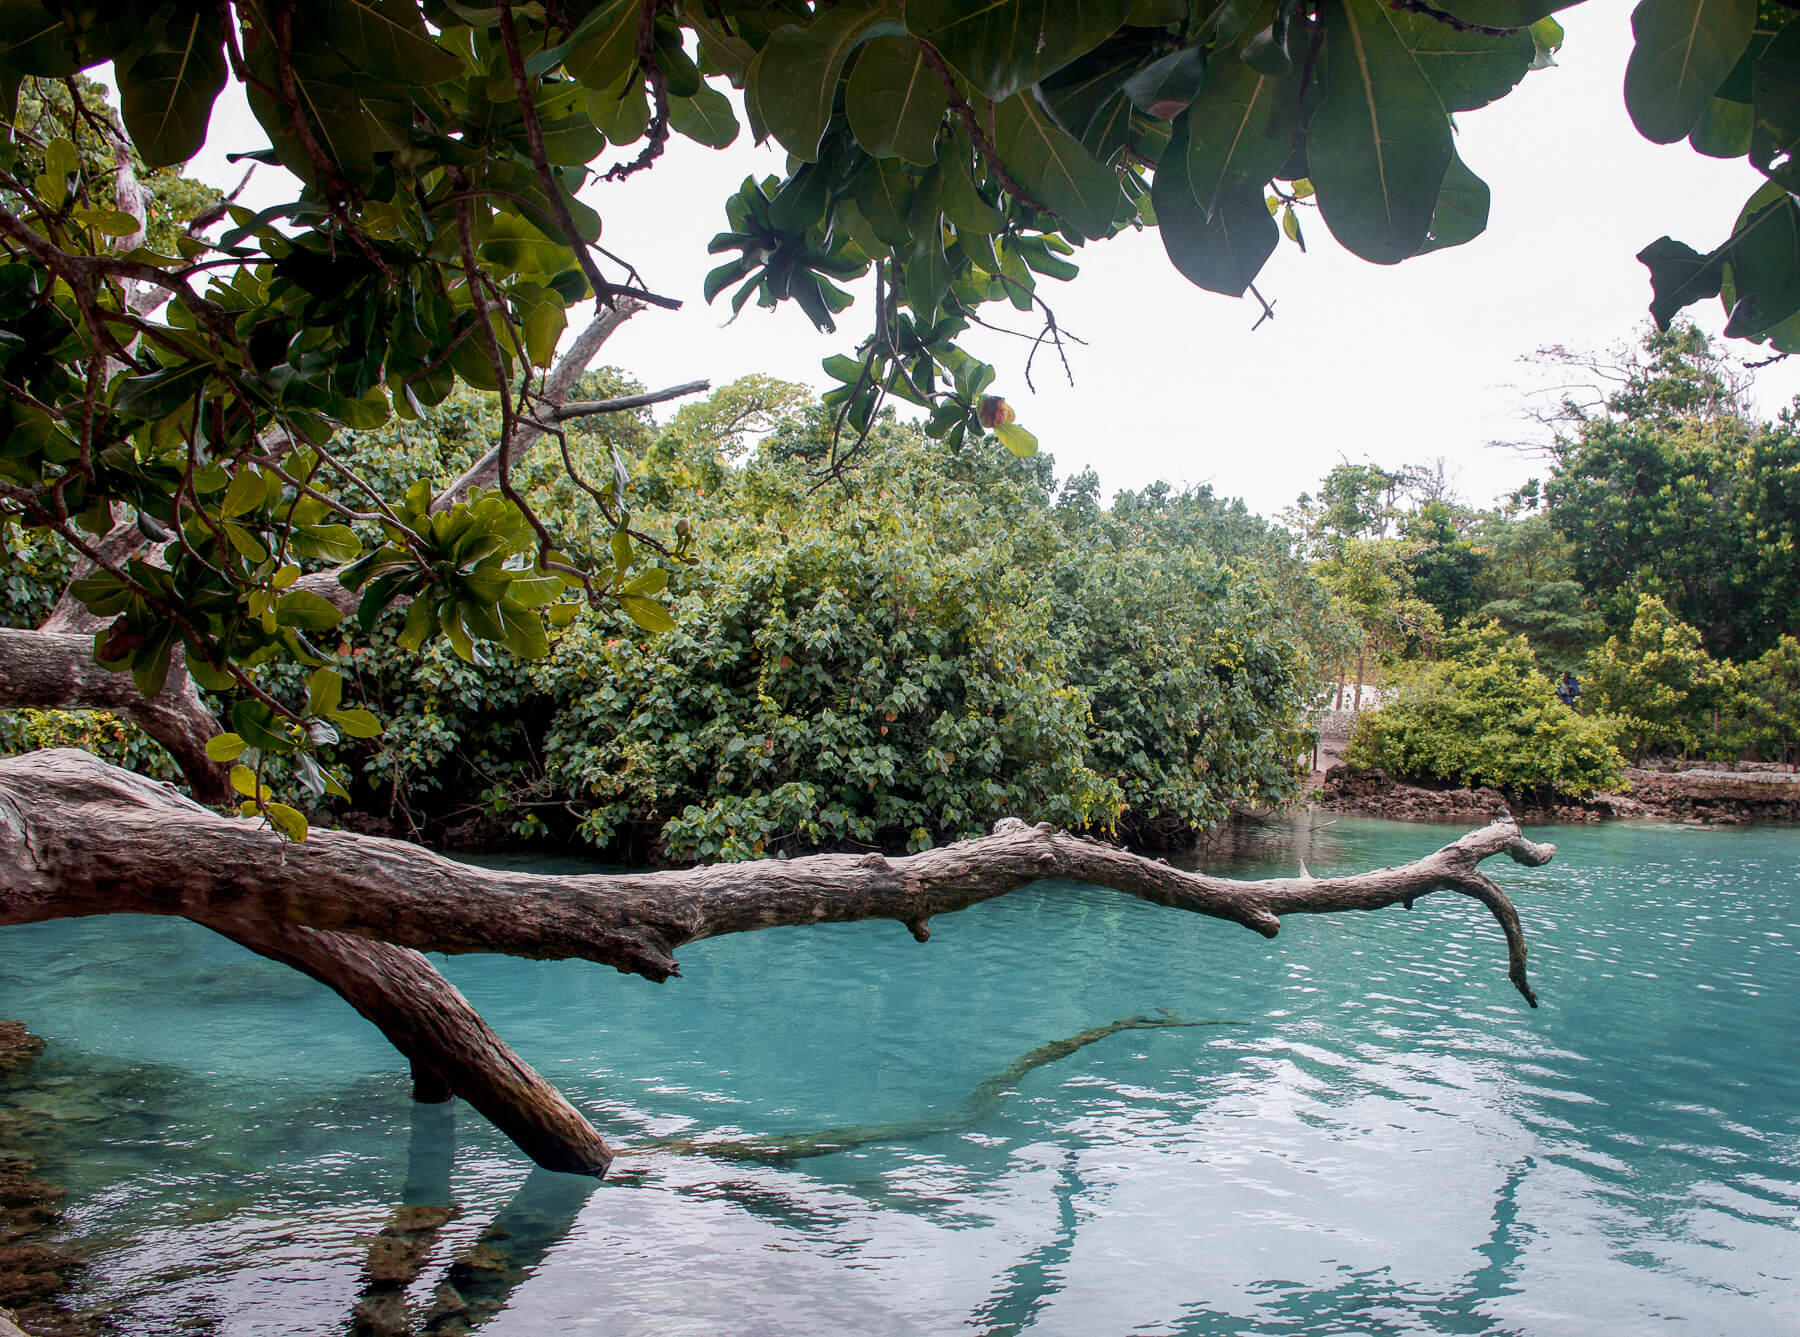 A big wooden branch over the water at Vanuatu's Blue Lagoon